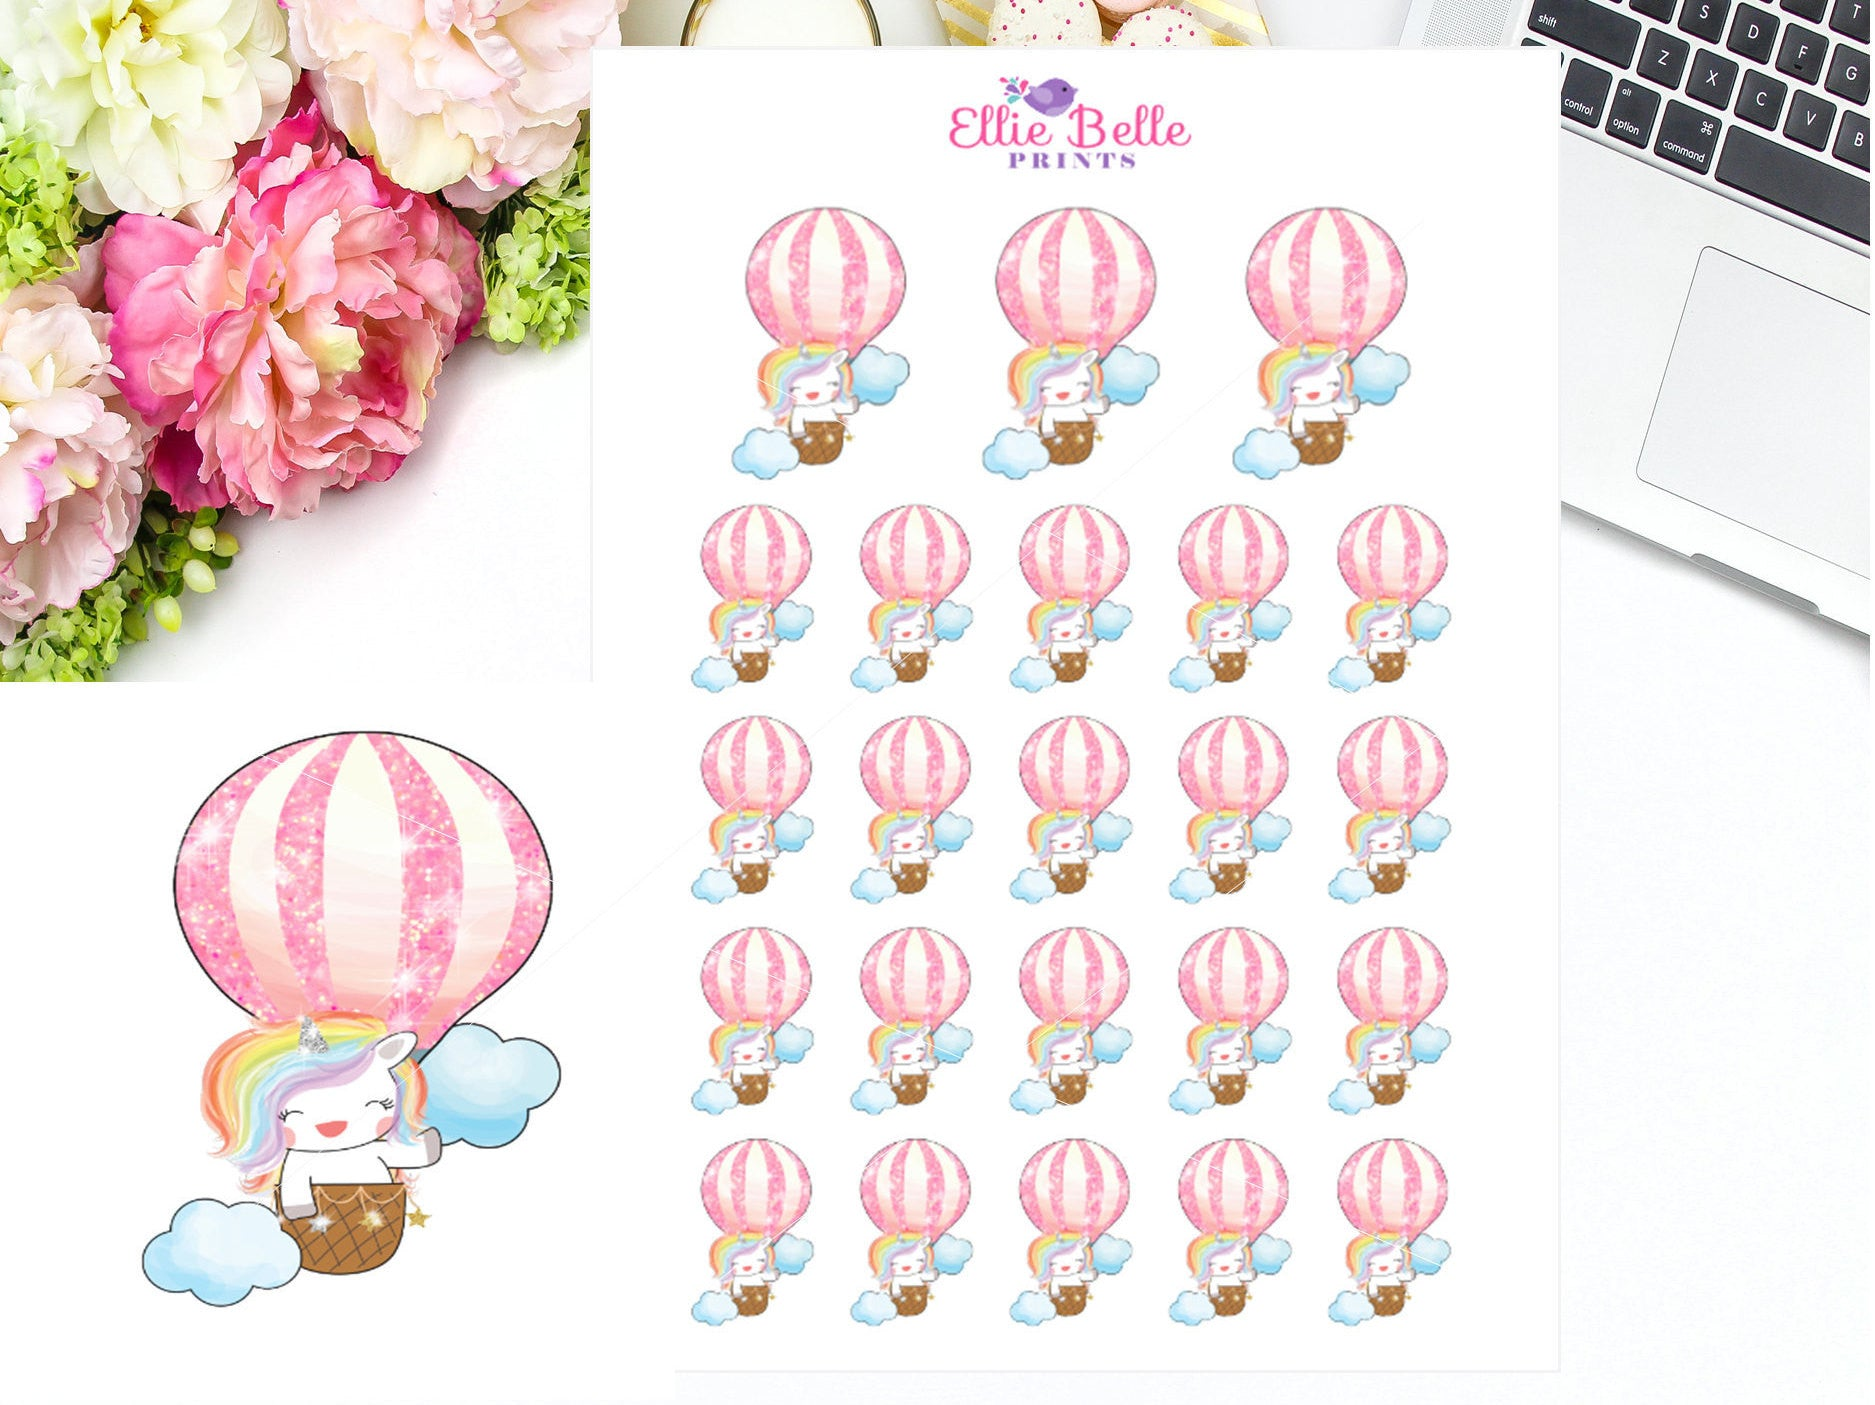 Hot Air Balloon Stickers - Rainbow Unicorn Collection